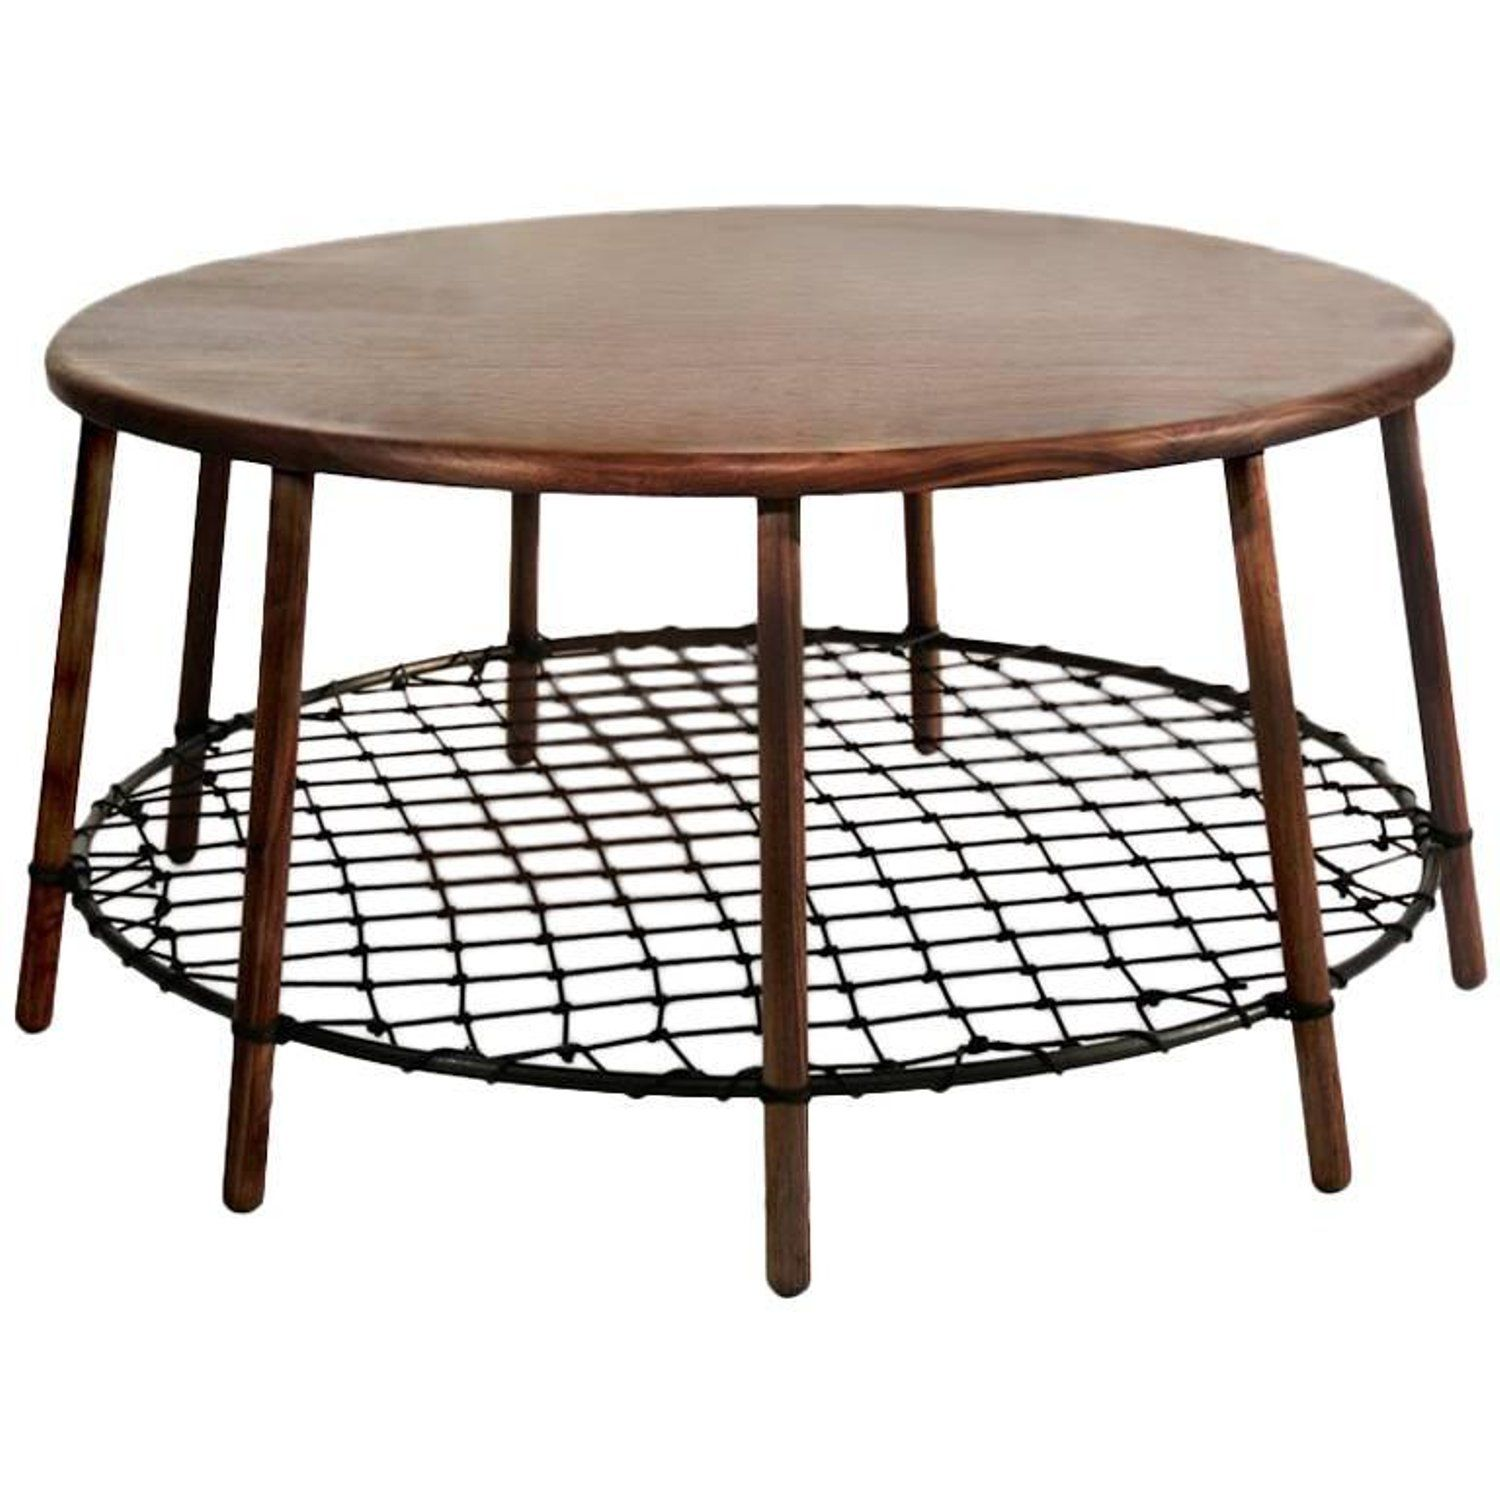 Side Table In Solid American Walnut With Steel Ring And Netting Walnut Coffee Table Small Coffee Table Large Coffee Tables